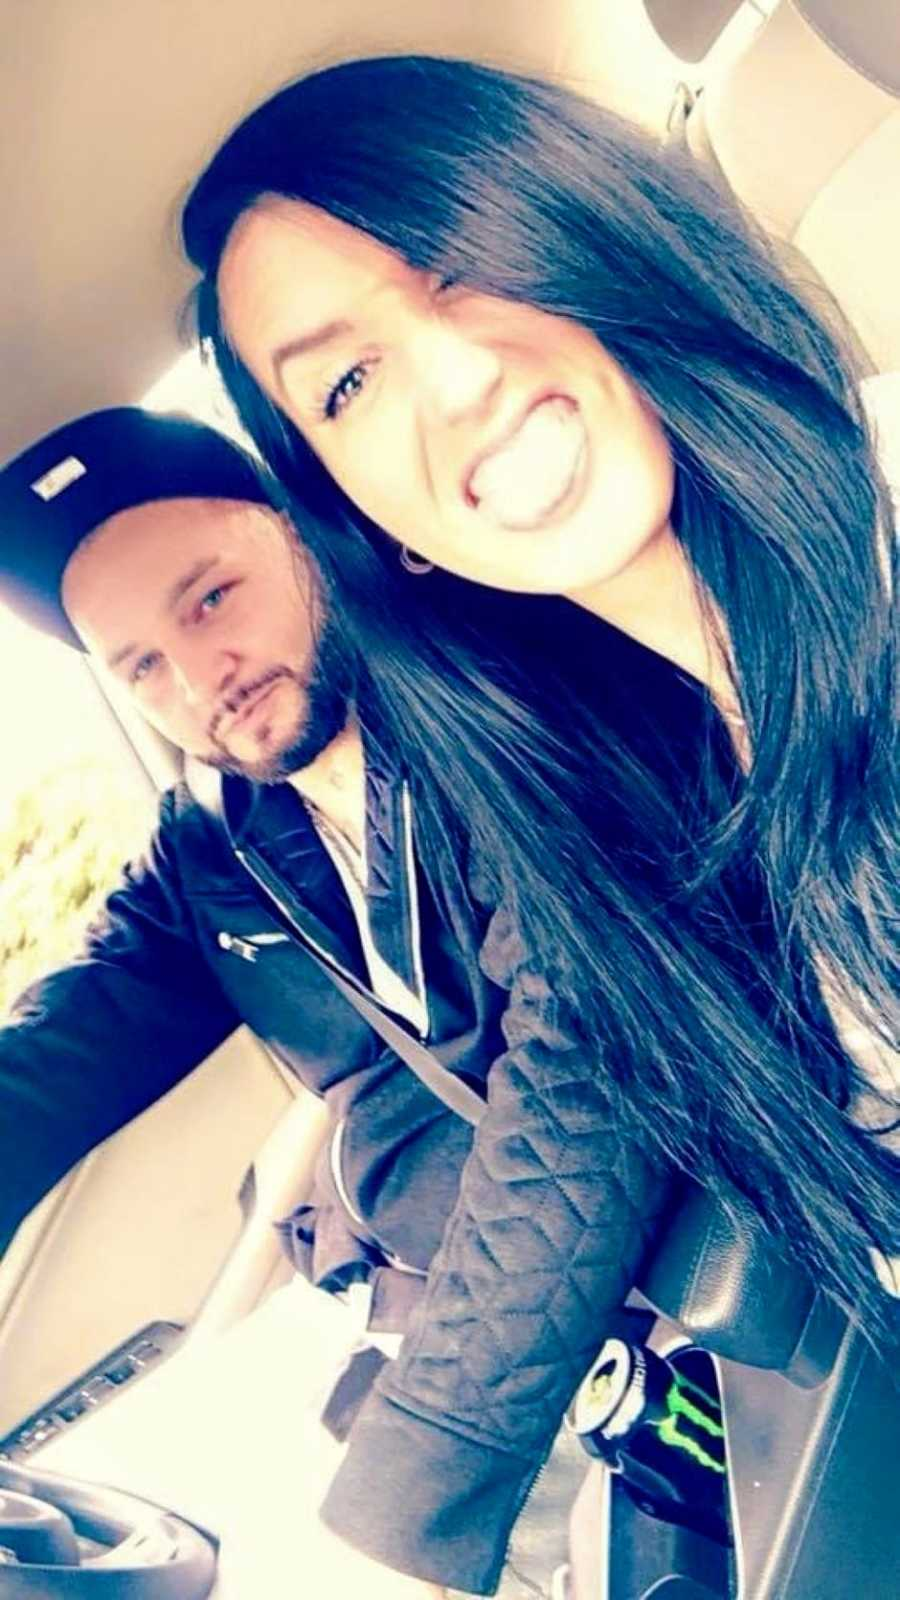 Couple take a silly selfie while driving around in their car